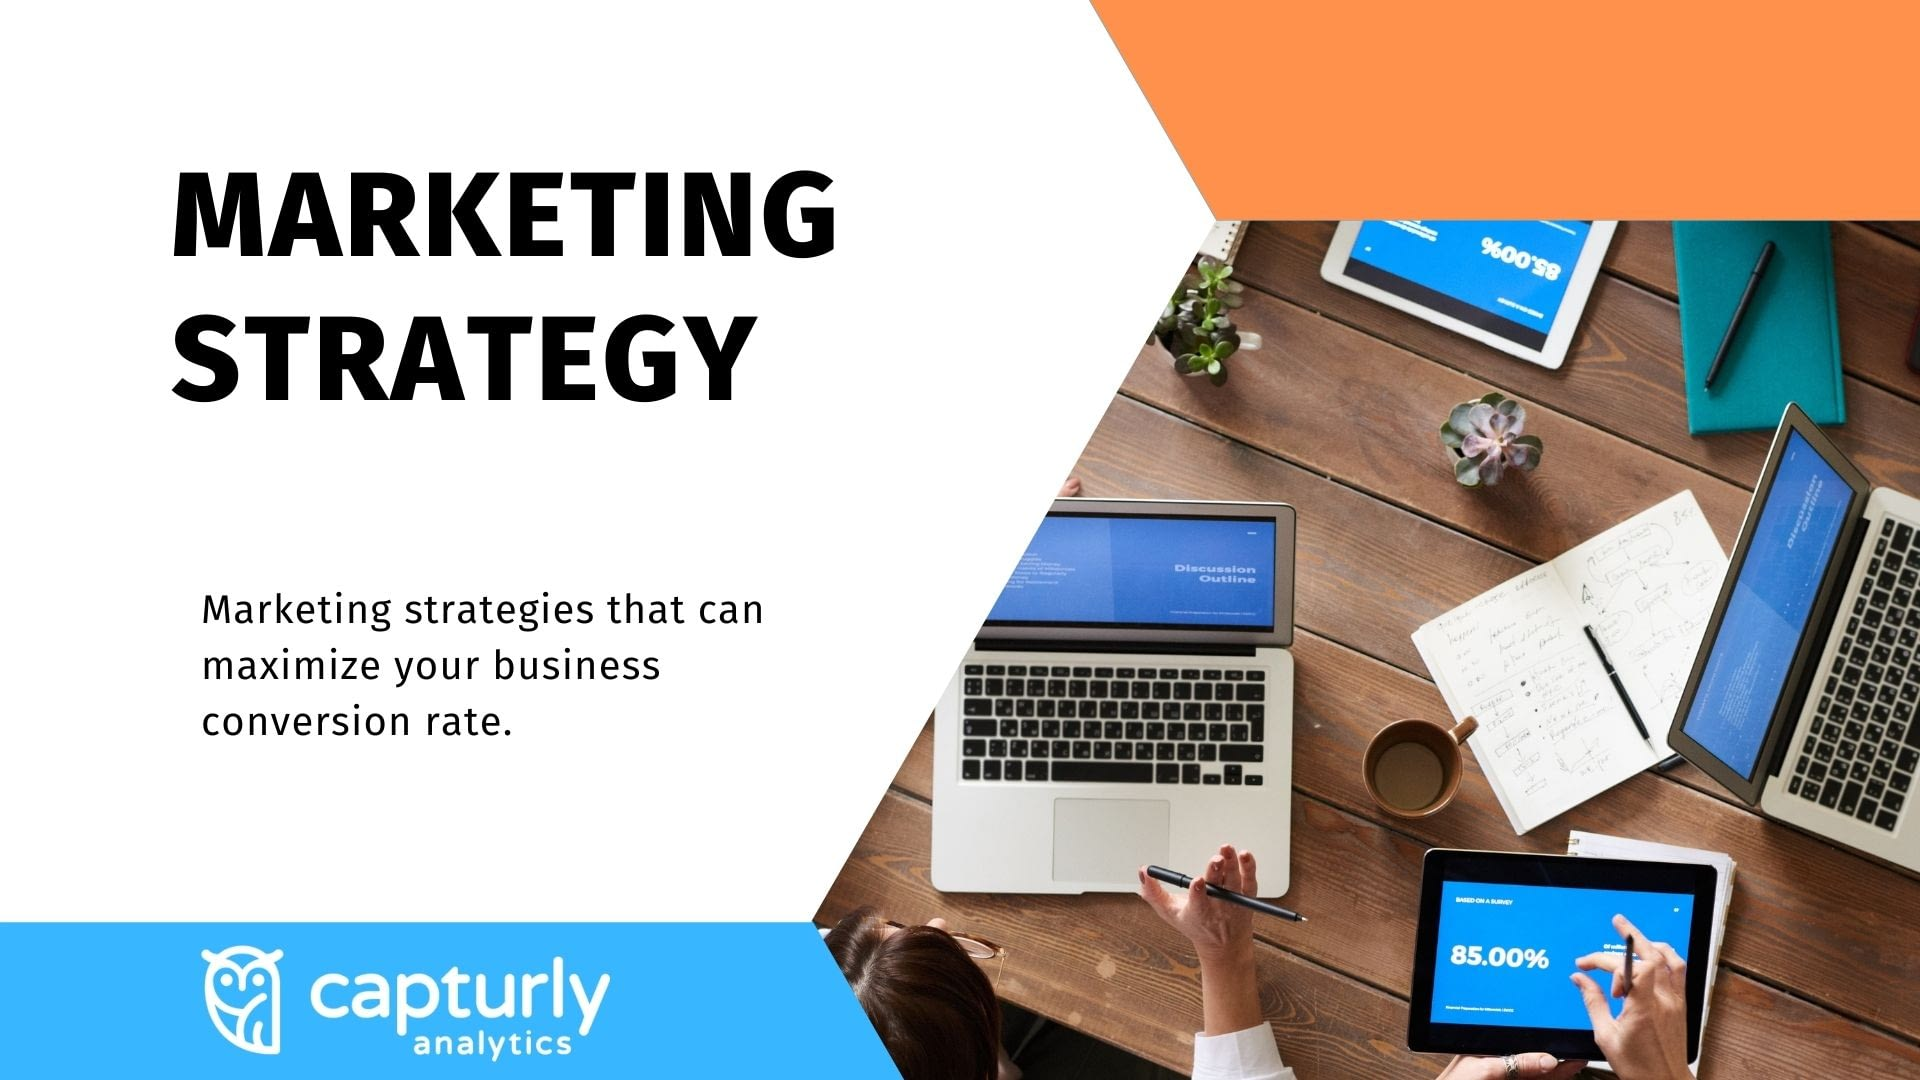 Best Marketing Strategies to Maximize Conversion Rate - Capturly Blog